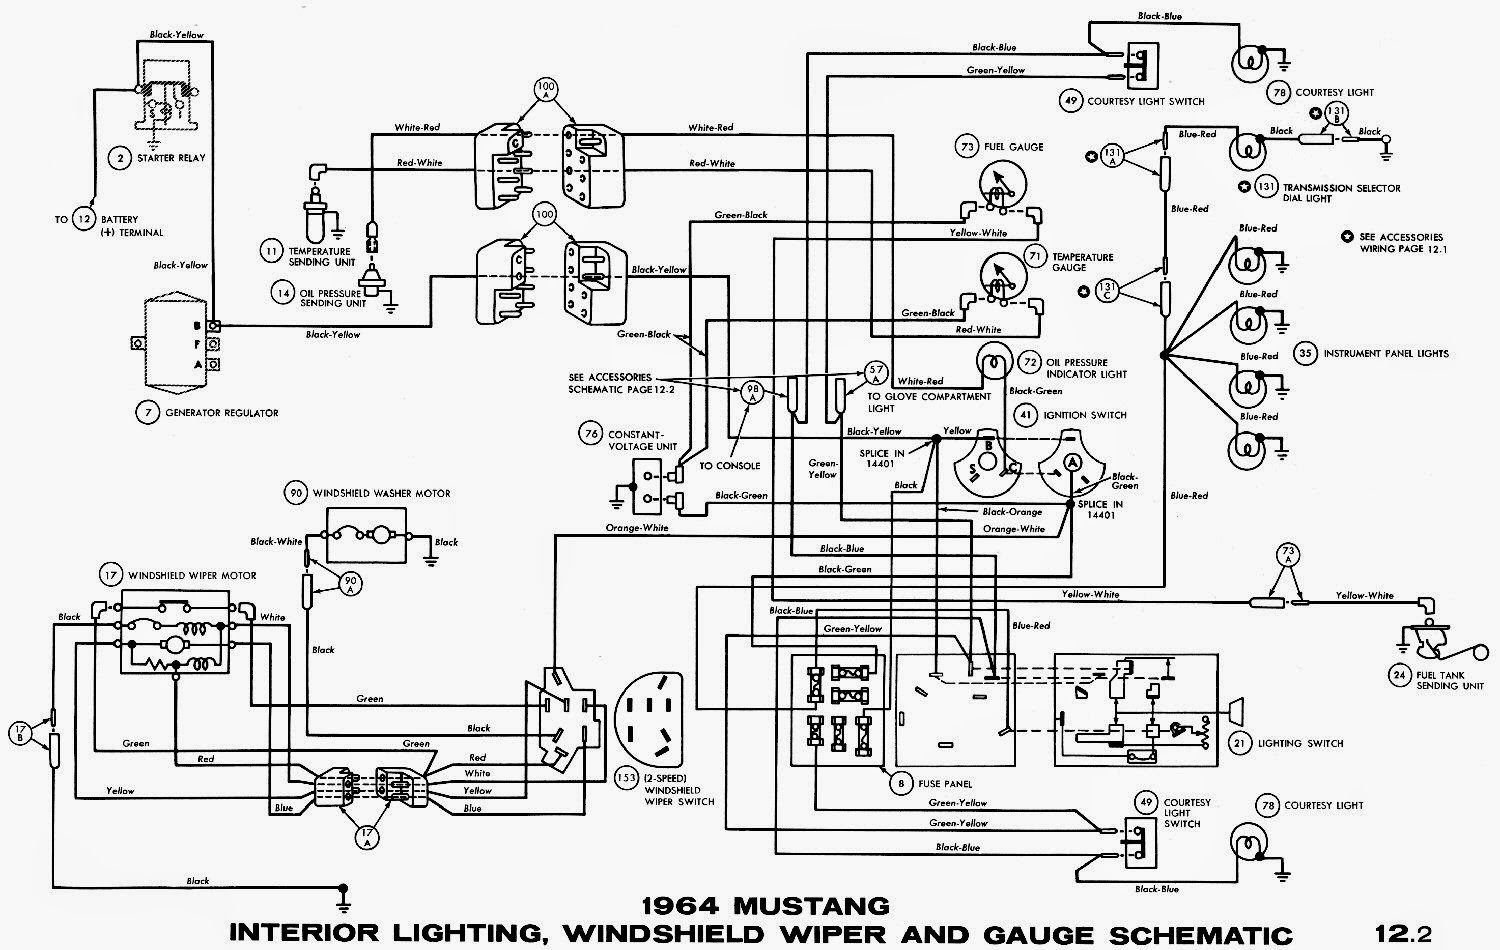 1967 Mustang Wiring And Vacuum Diagrams also Automotive Wiring Repair Car Diagrams App Reading Harness Connectors Auto Electrical Diagram For Wire Cars likewise Chevy C10 Fuse Box Diagram in addition Fordindex in addition 2004 Nissan Xterra Xe Engine Parts Diagram. on wiring diagram for 1964 thunderbird